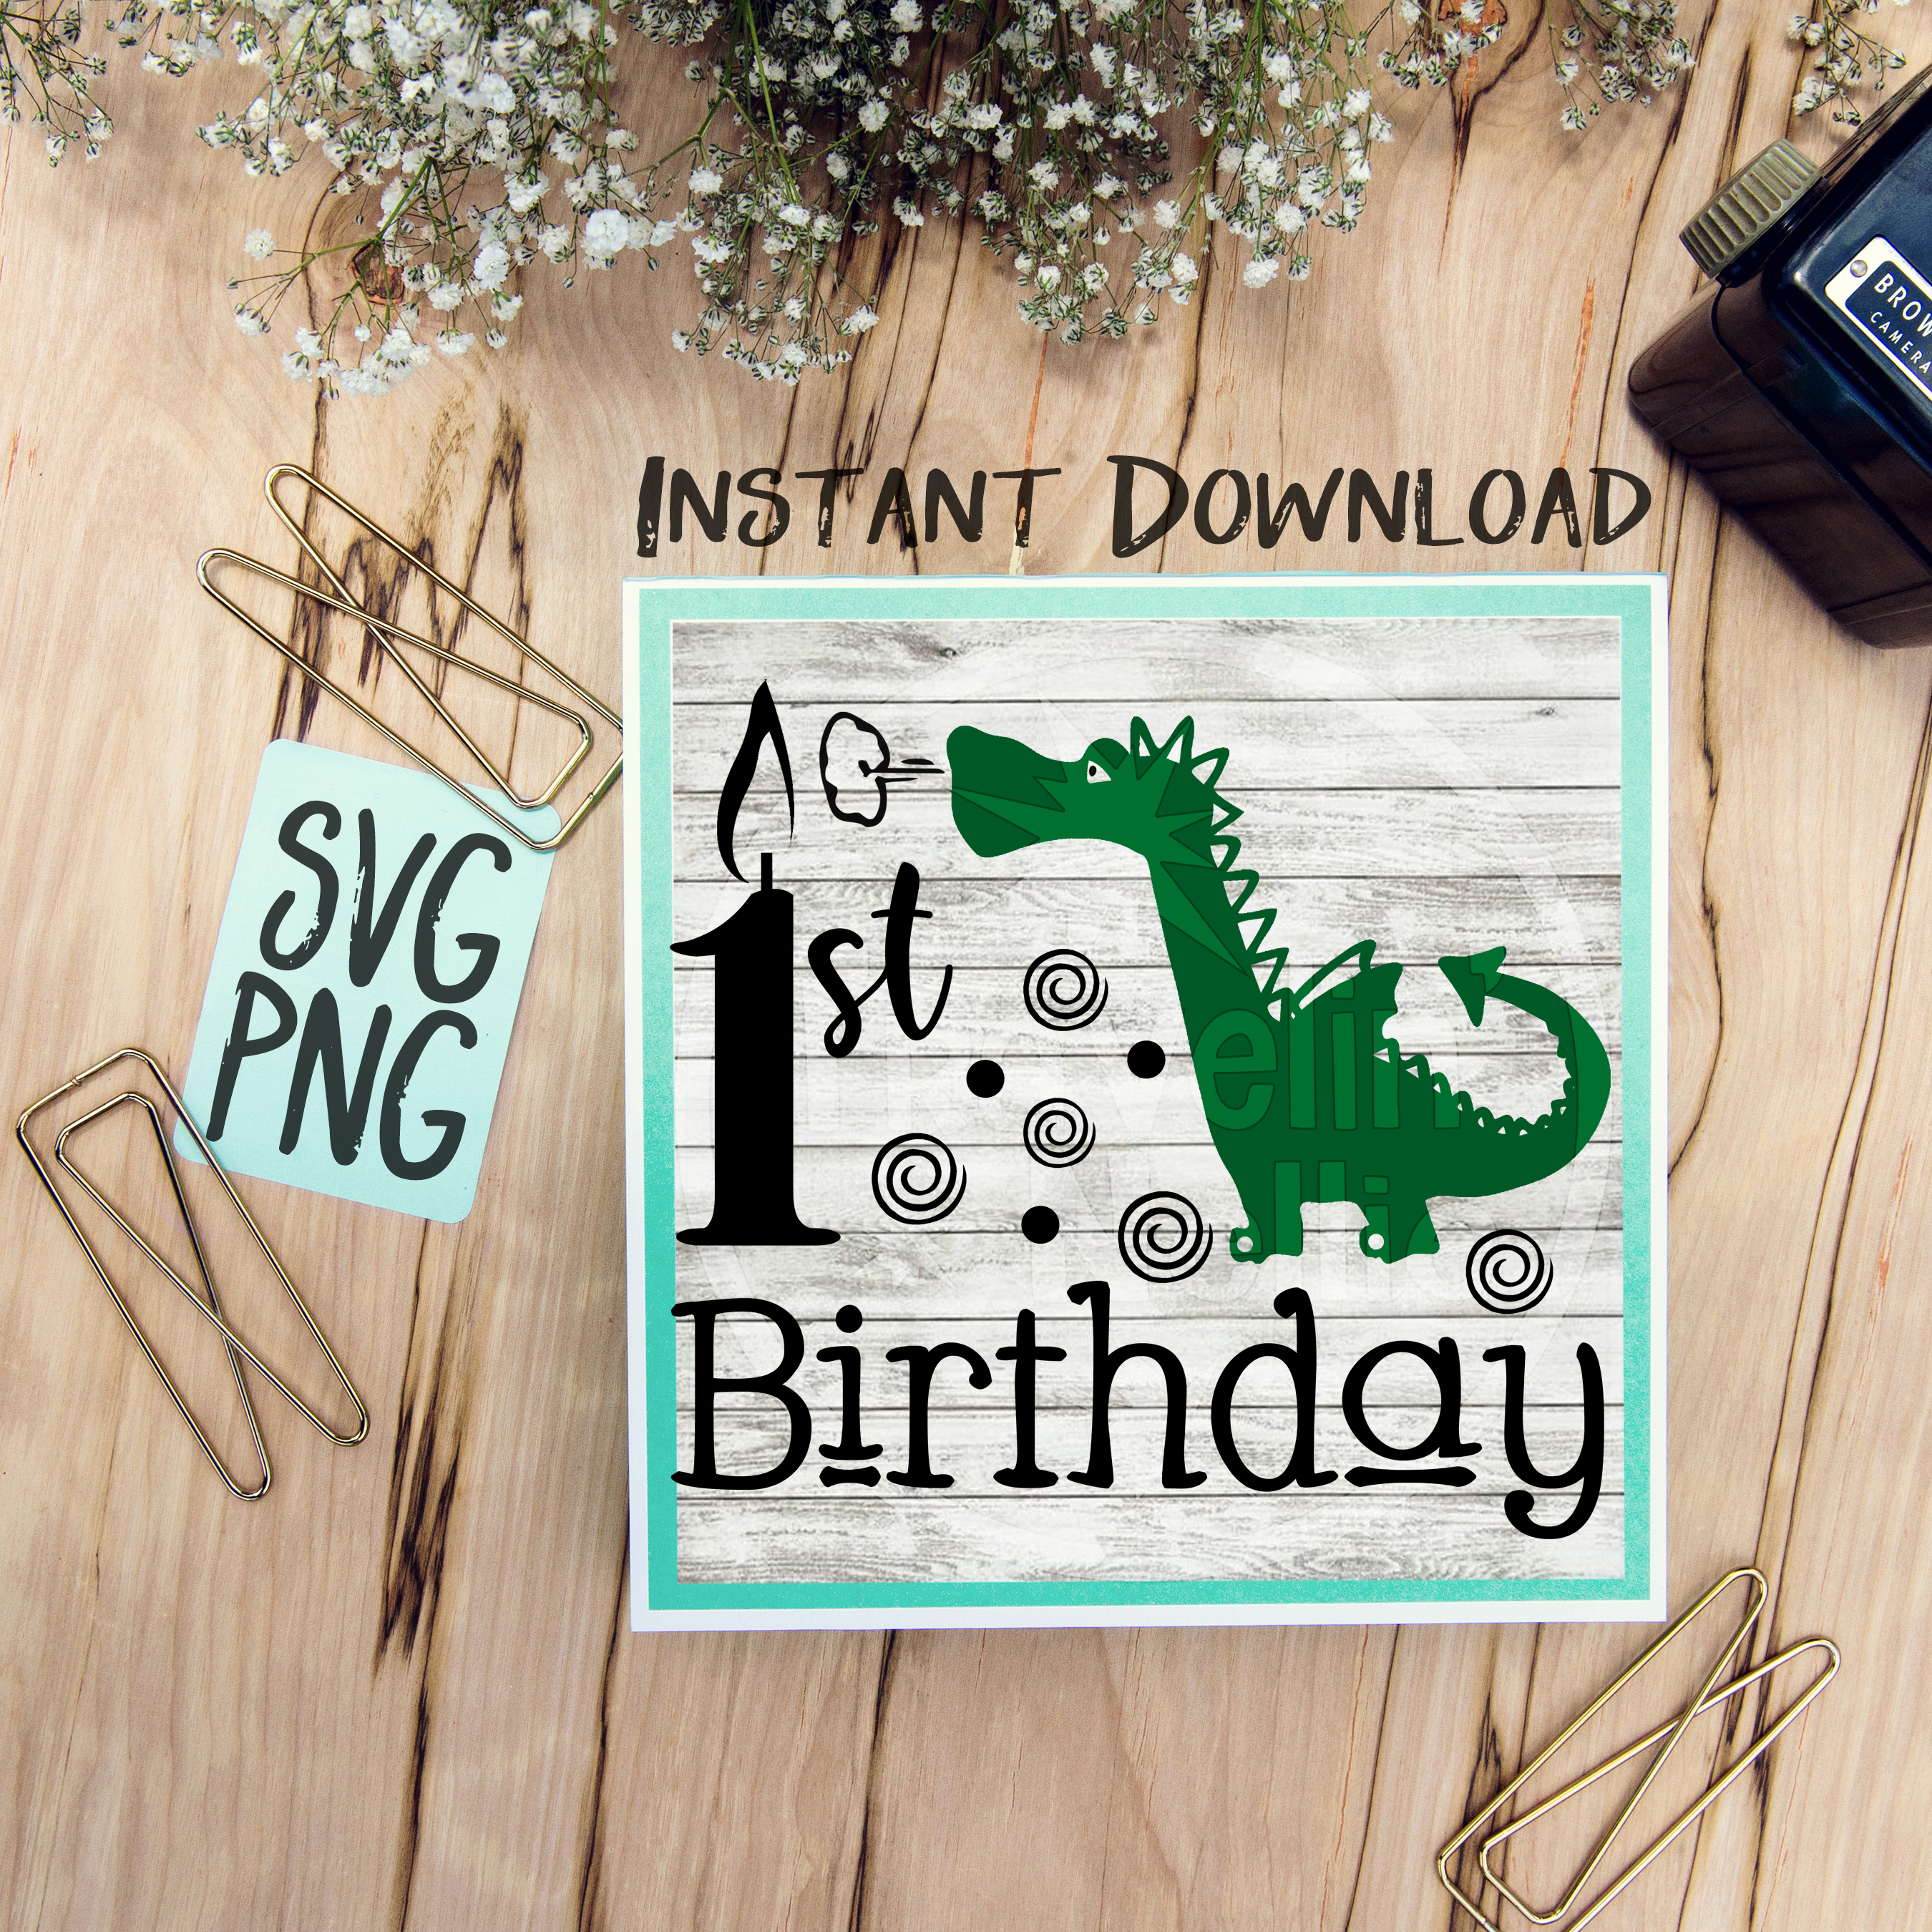 1st Birthday Dragon SVG Image Design for Vinyl Cutters Print DIY Design Brother Cricut Cameo Cutout  example image 1